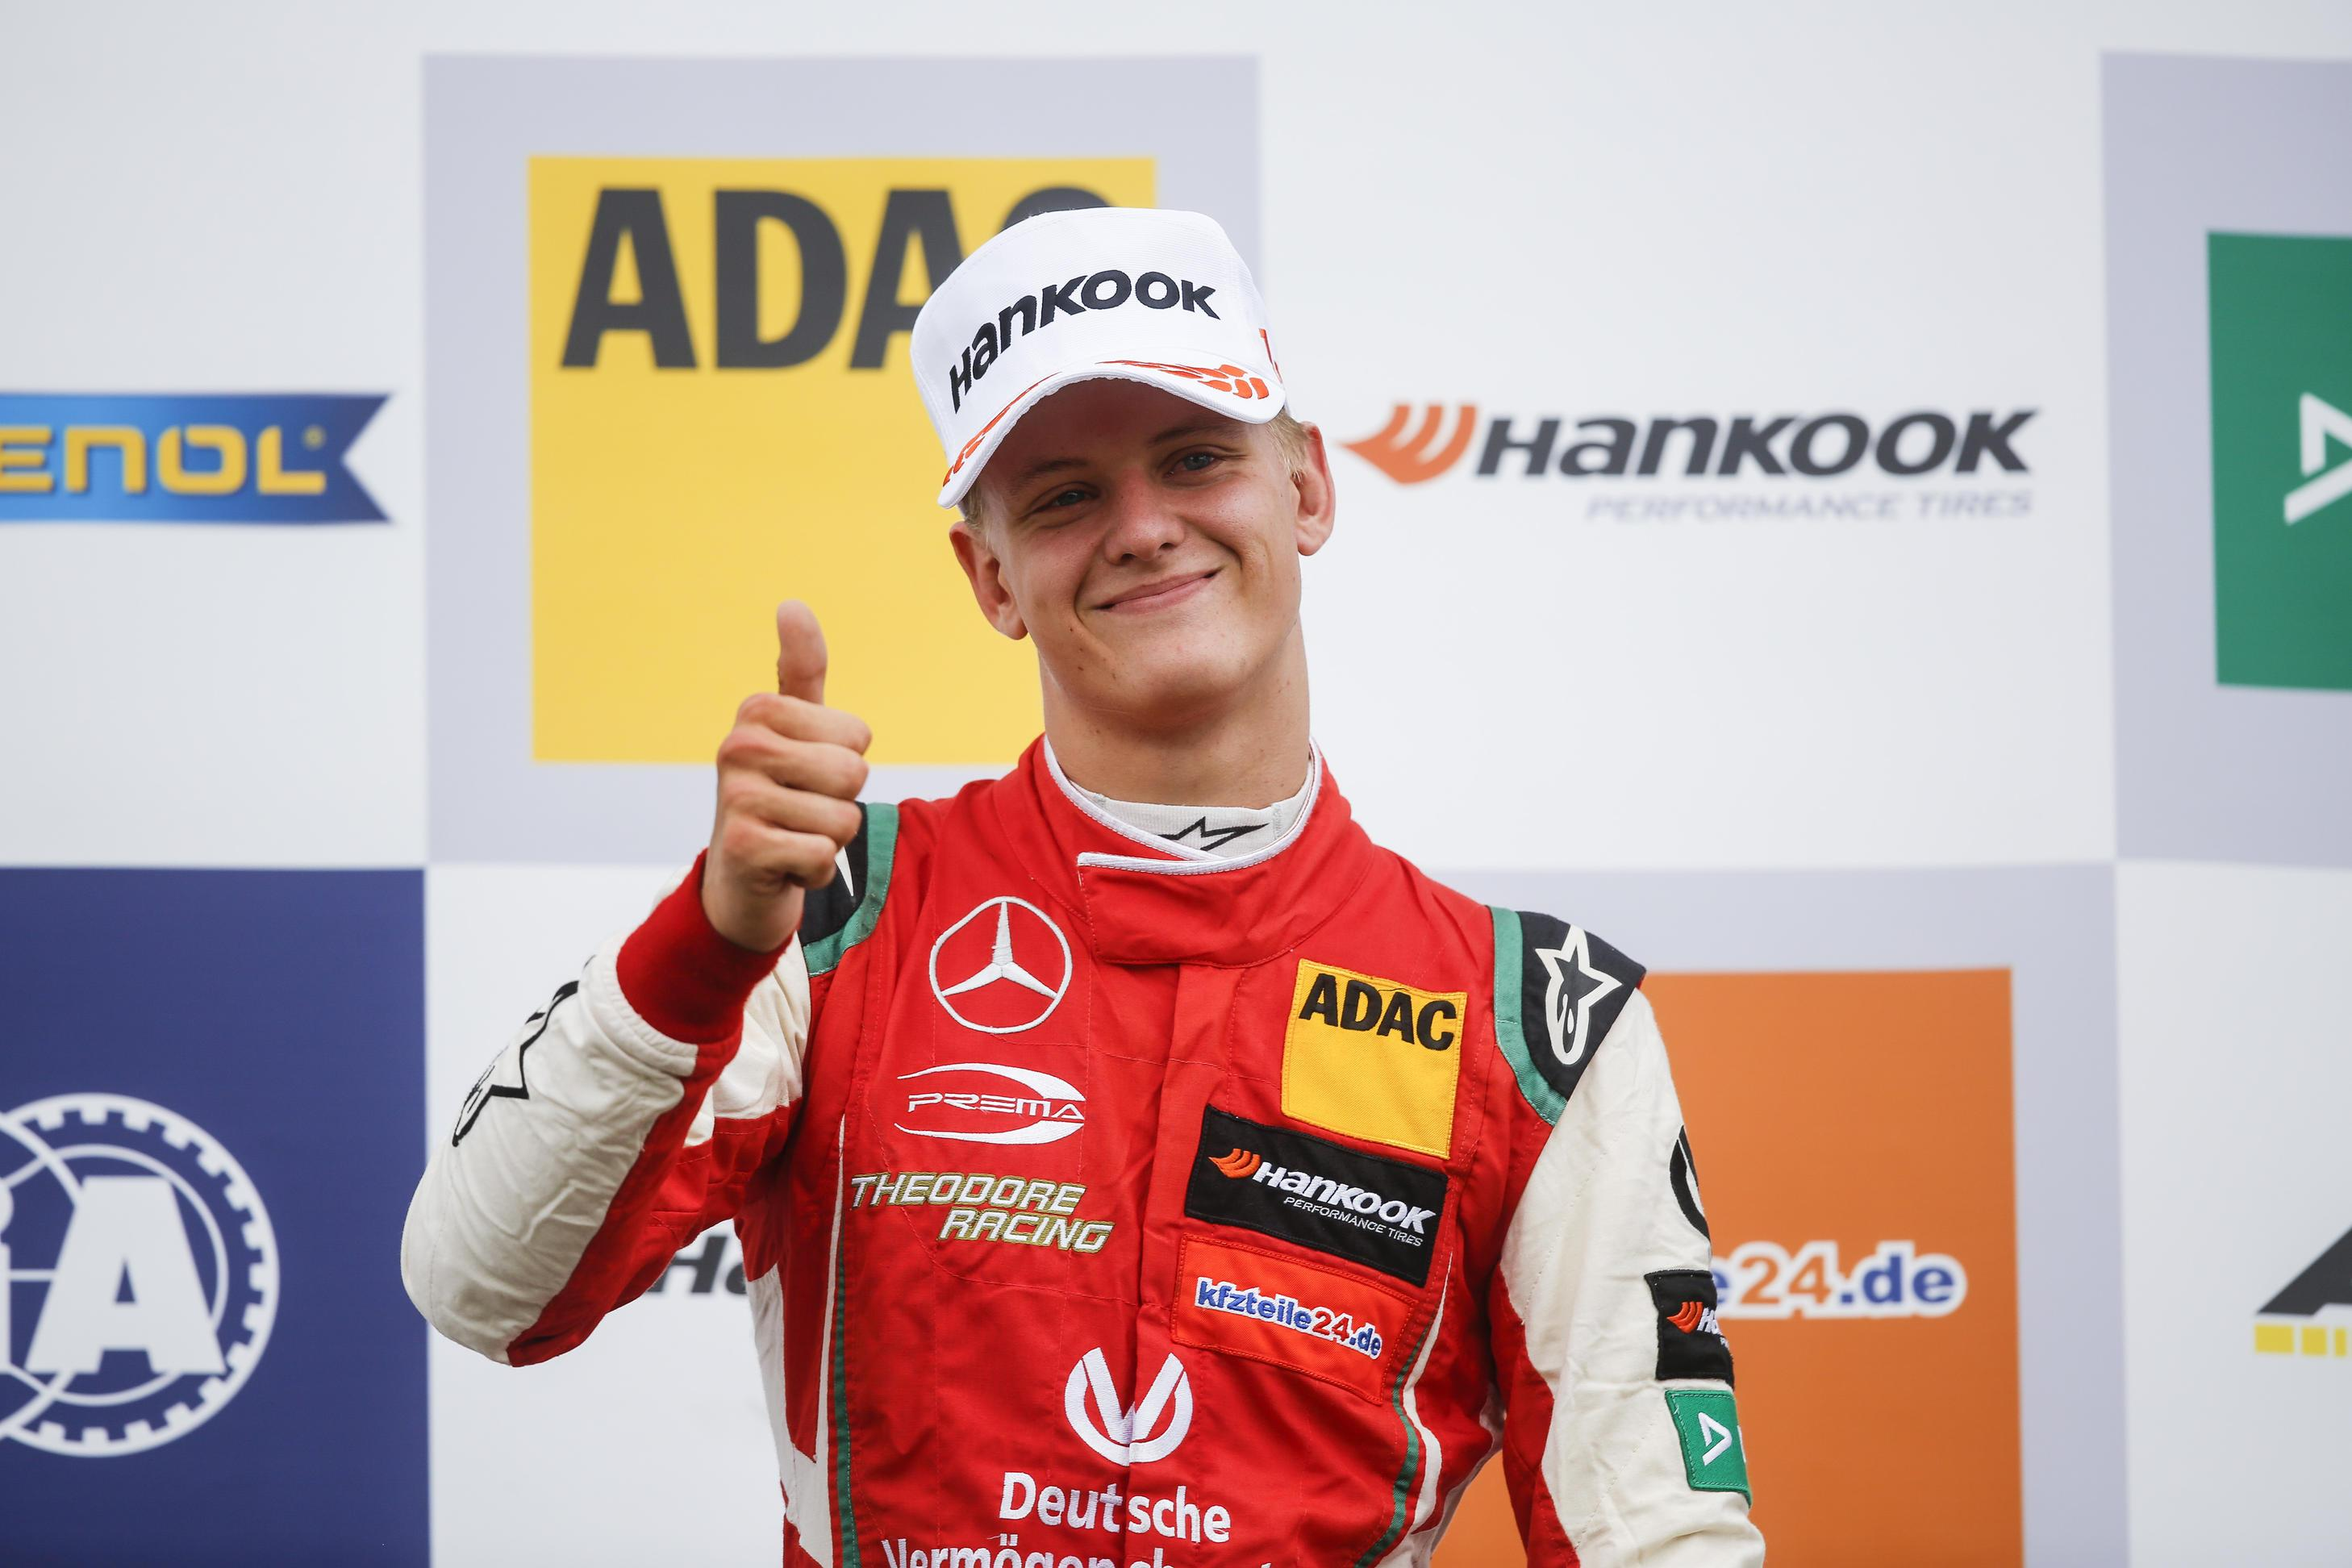 Mick Schumacher is hoping to follow dad Michael into F1